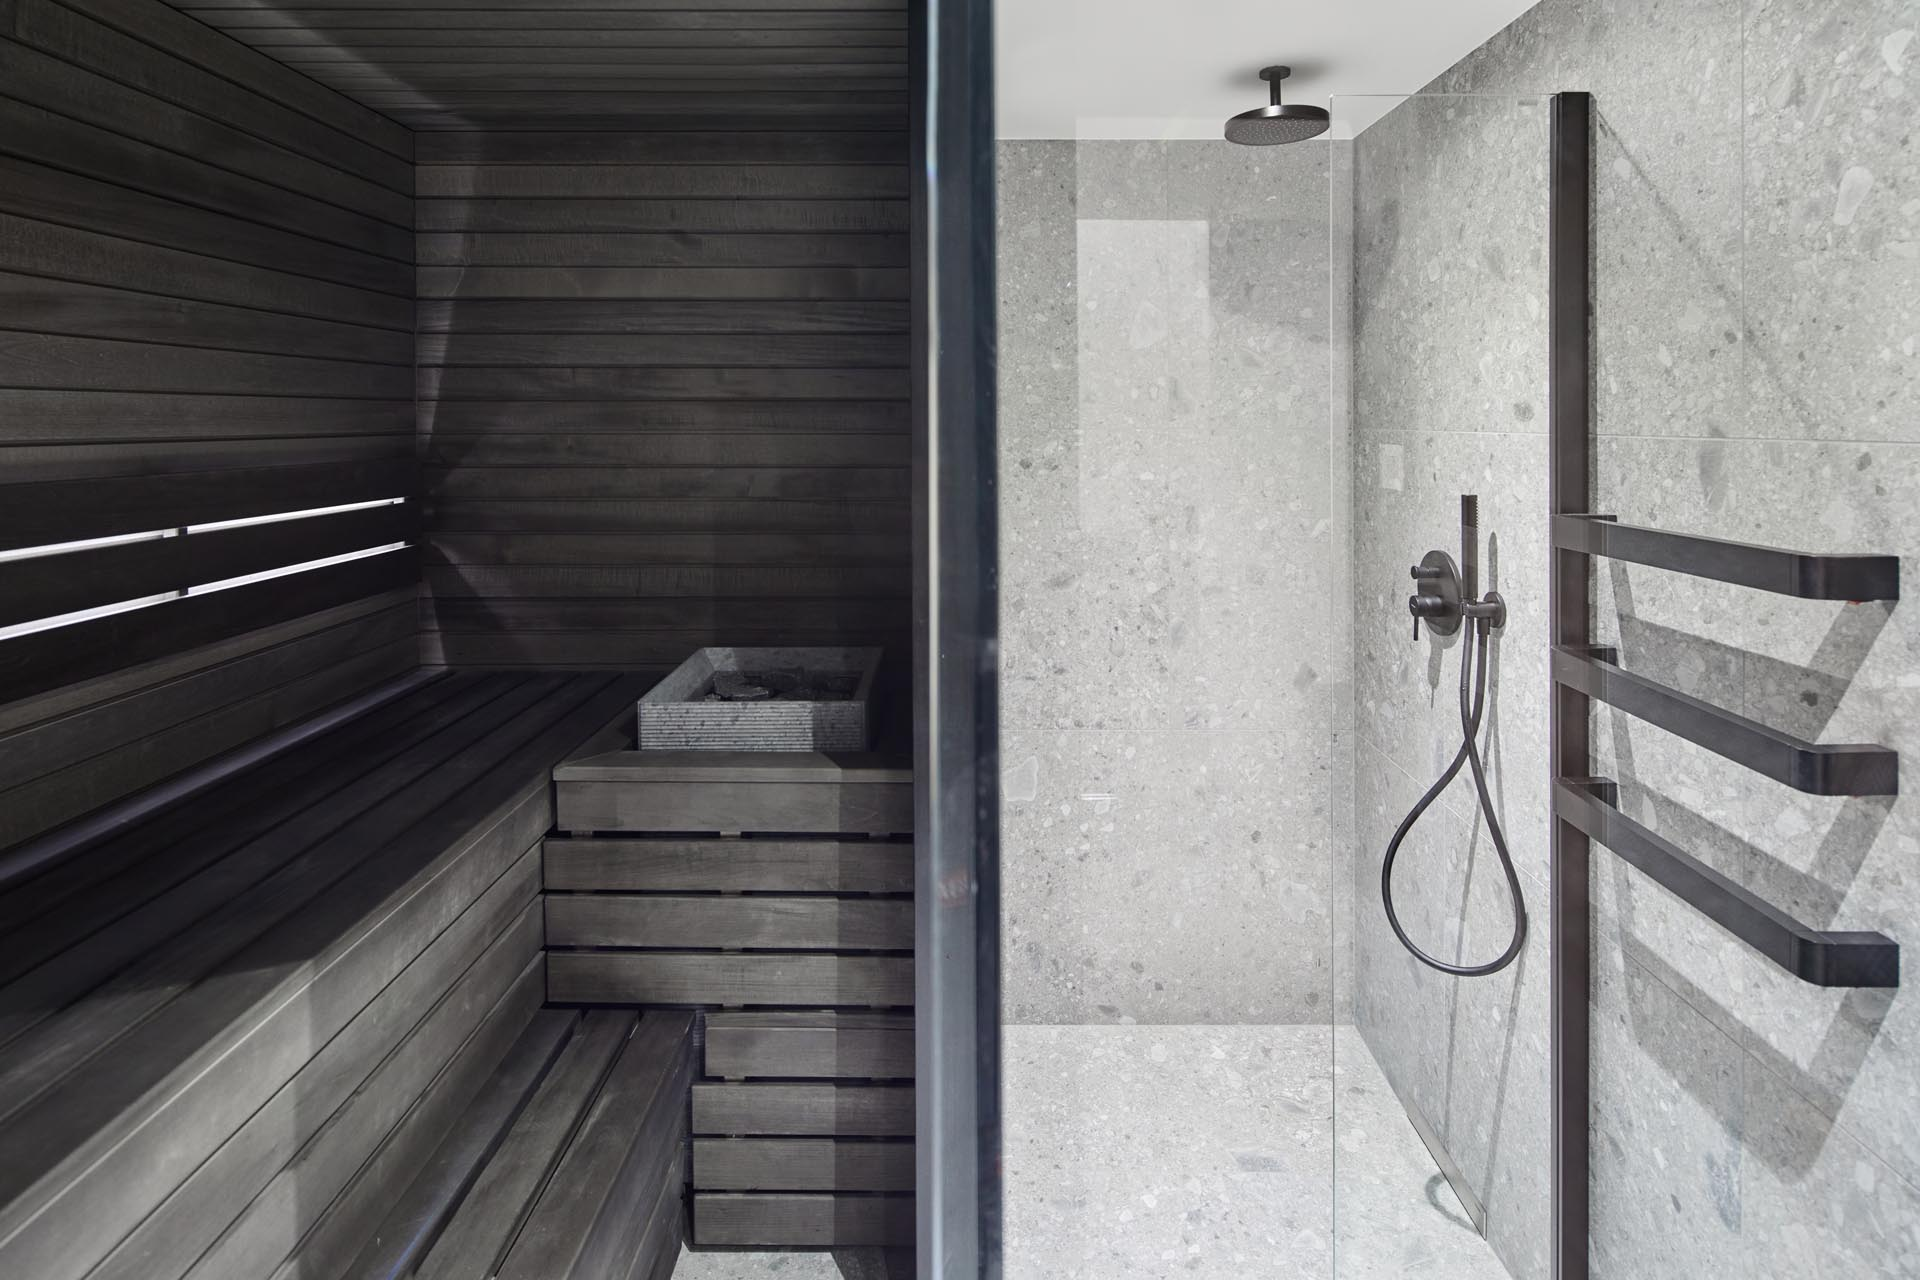 In this modern bathroom, there's blue and dark wood walls, black accents, a walk-in shower, and a sauna.